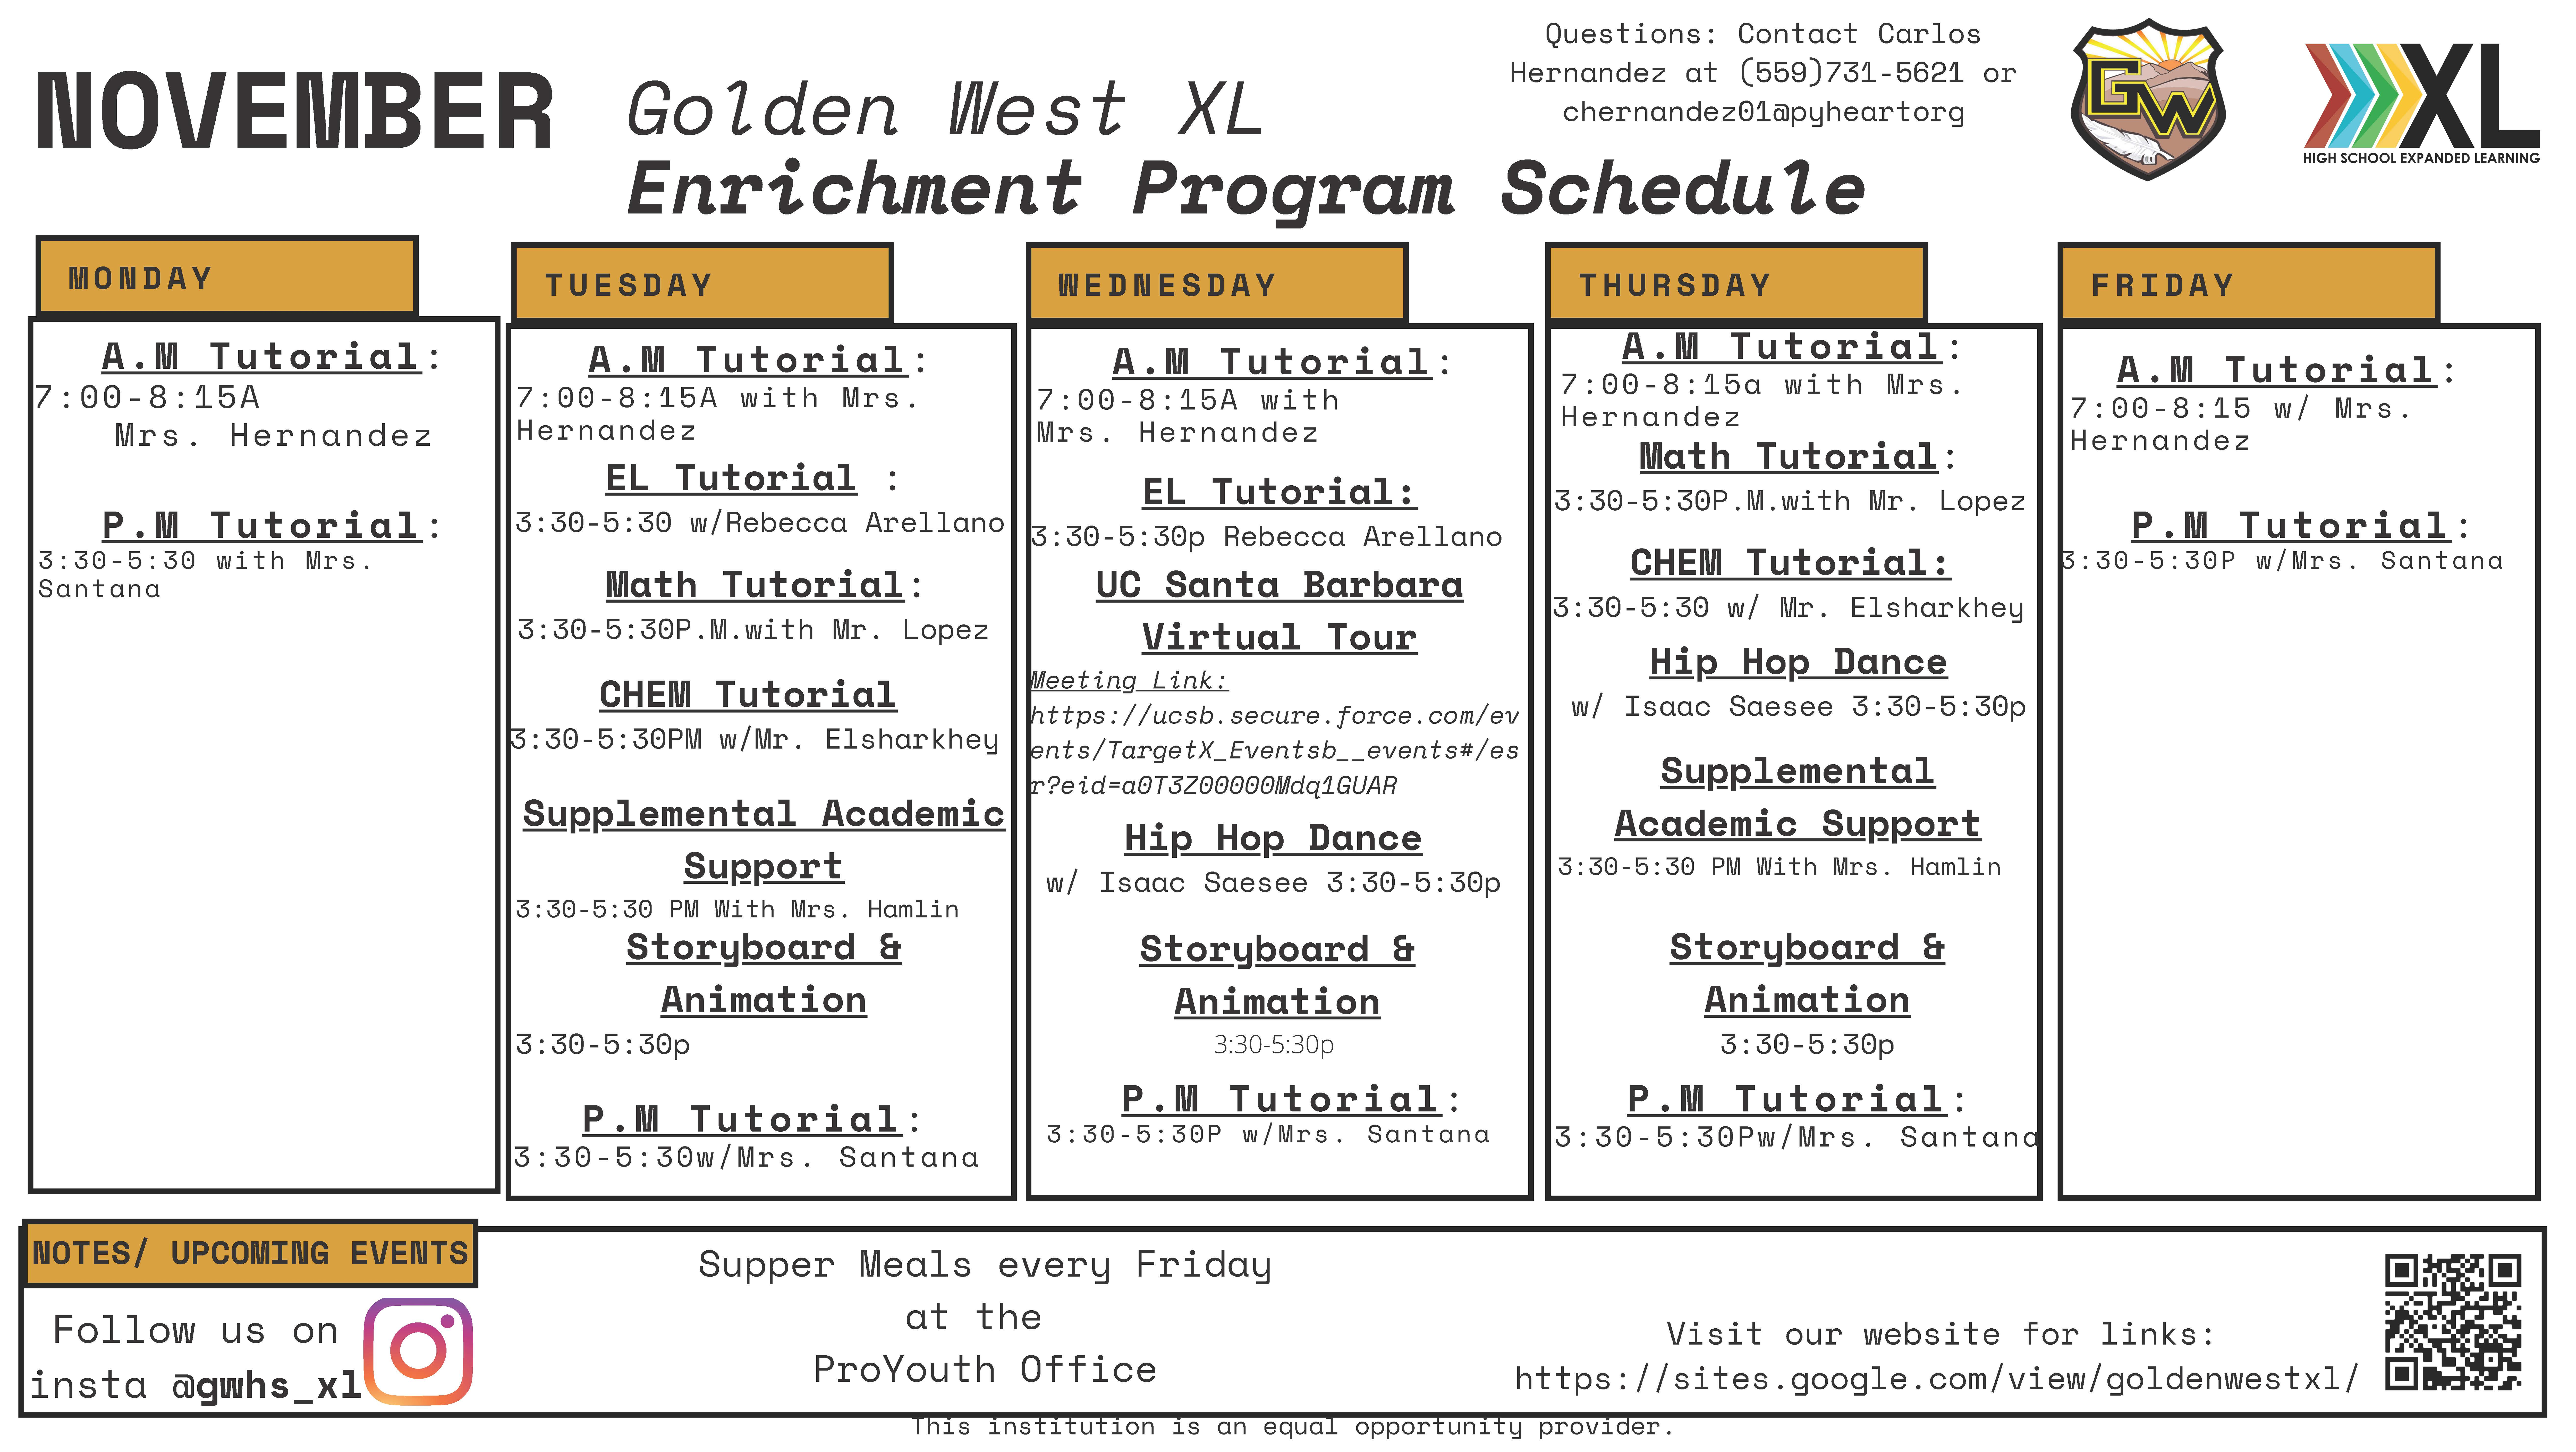 Golden West XL Enrichment Program Schedule